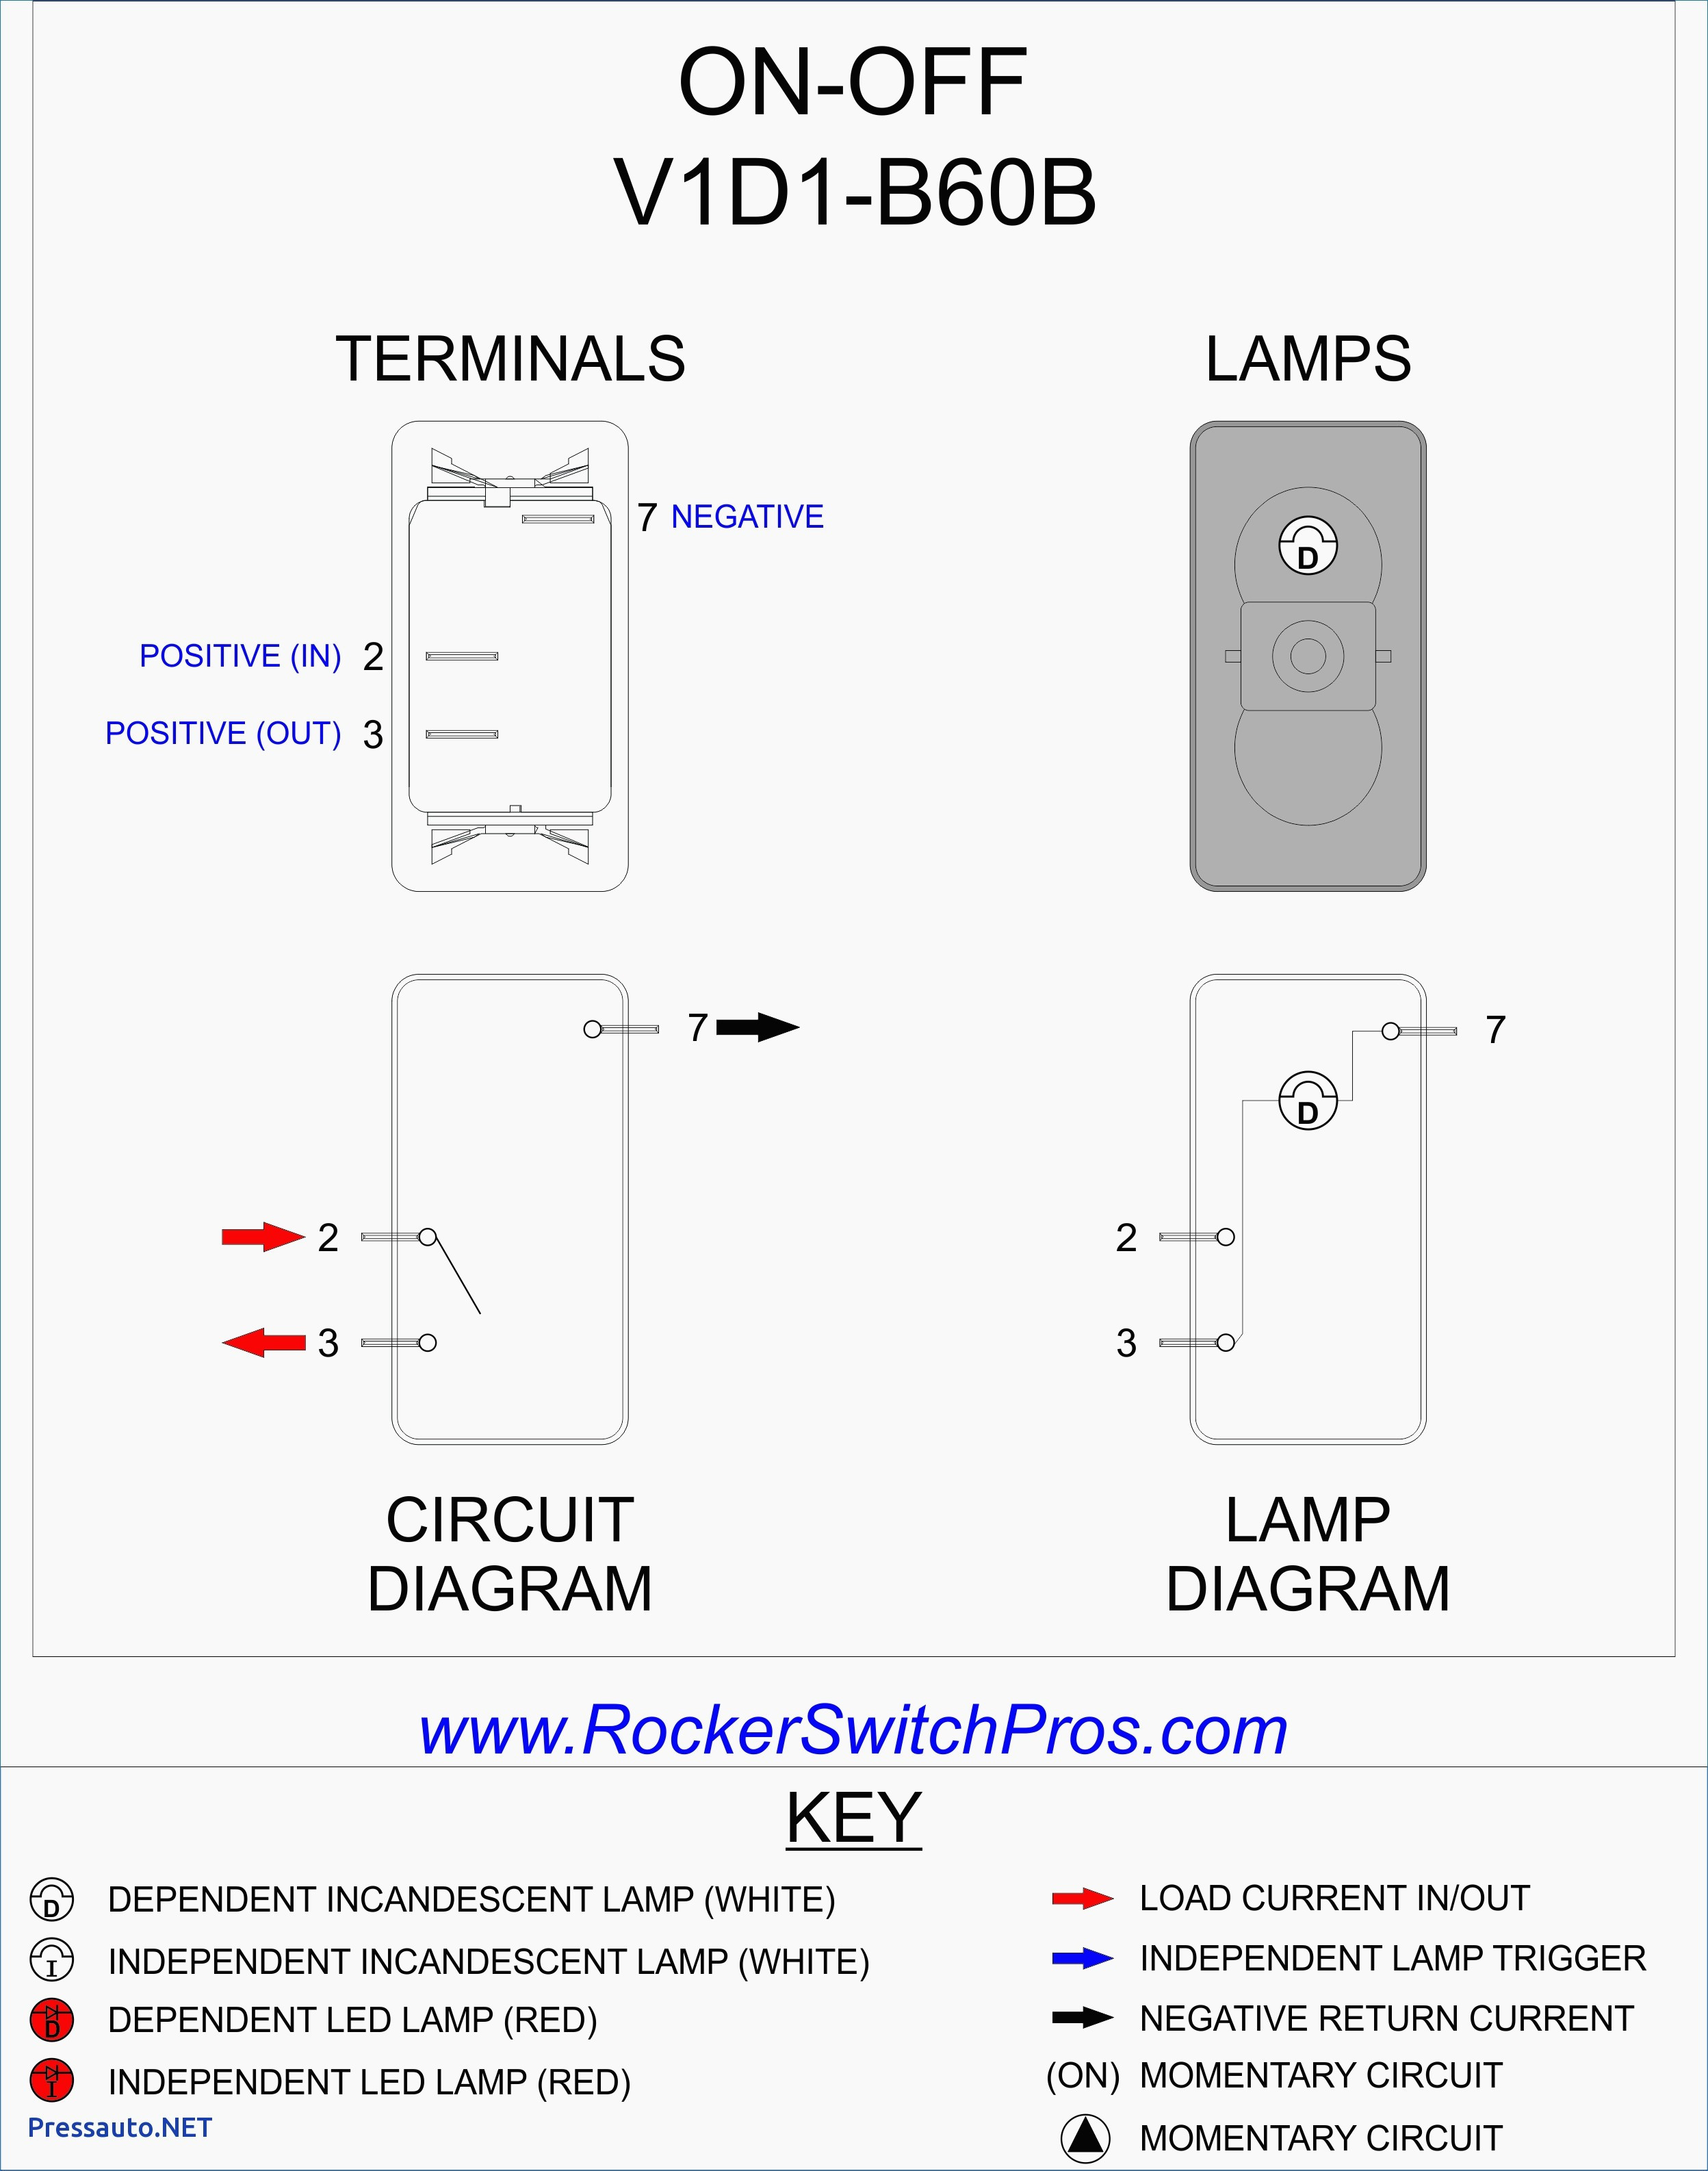 spdt toggle switch wiring diagram Download-Dpdt Switch Wiring Diagram Guitar New Dpdt Switch Wiring Diagram Guitar Fresh Spdt Rocker Switch Wiring 4-e